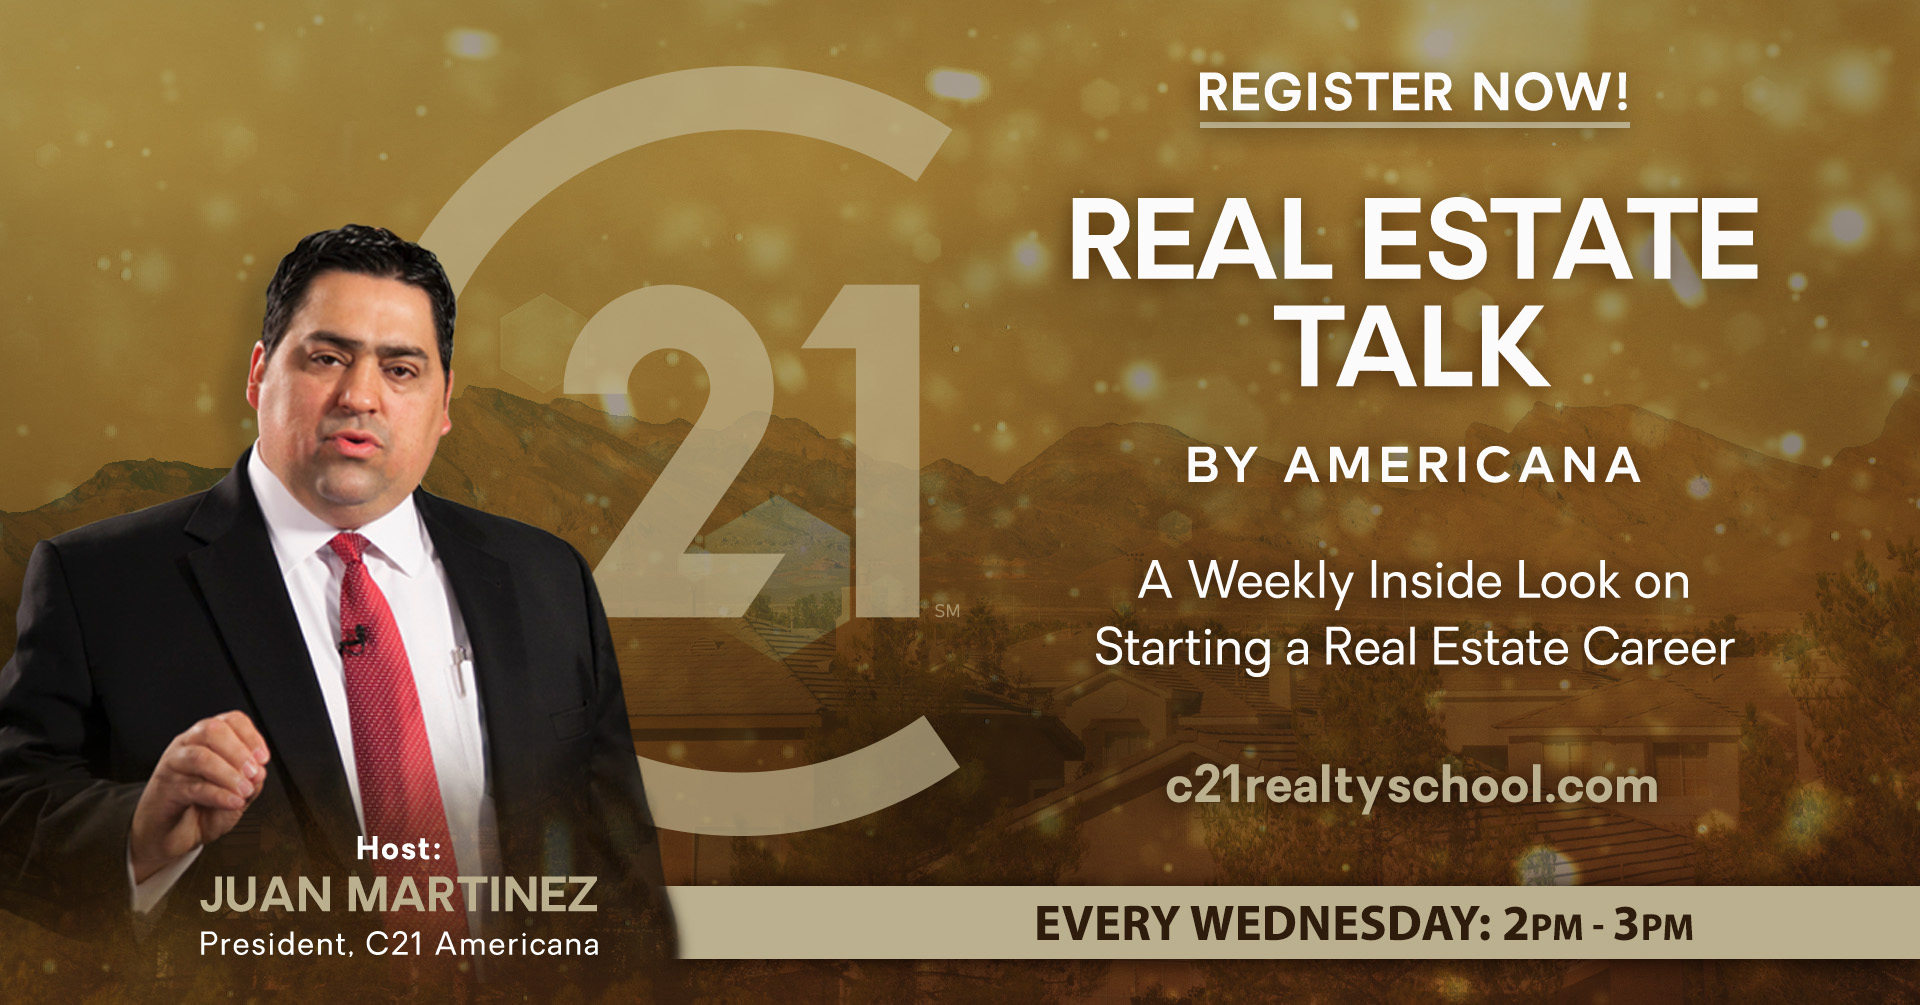 Real Estate Talk Event - A Weekly Look at Starting a Real Estate Career